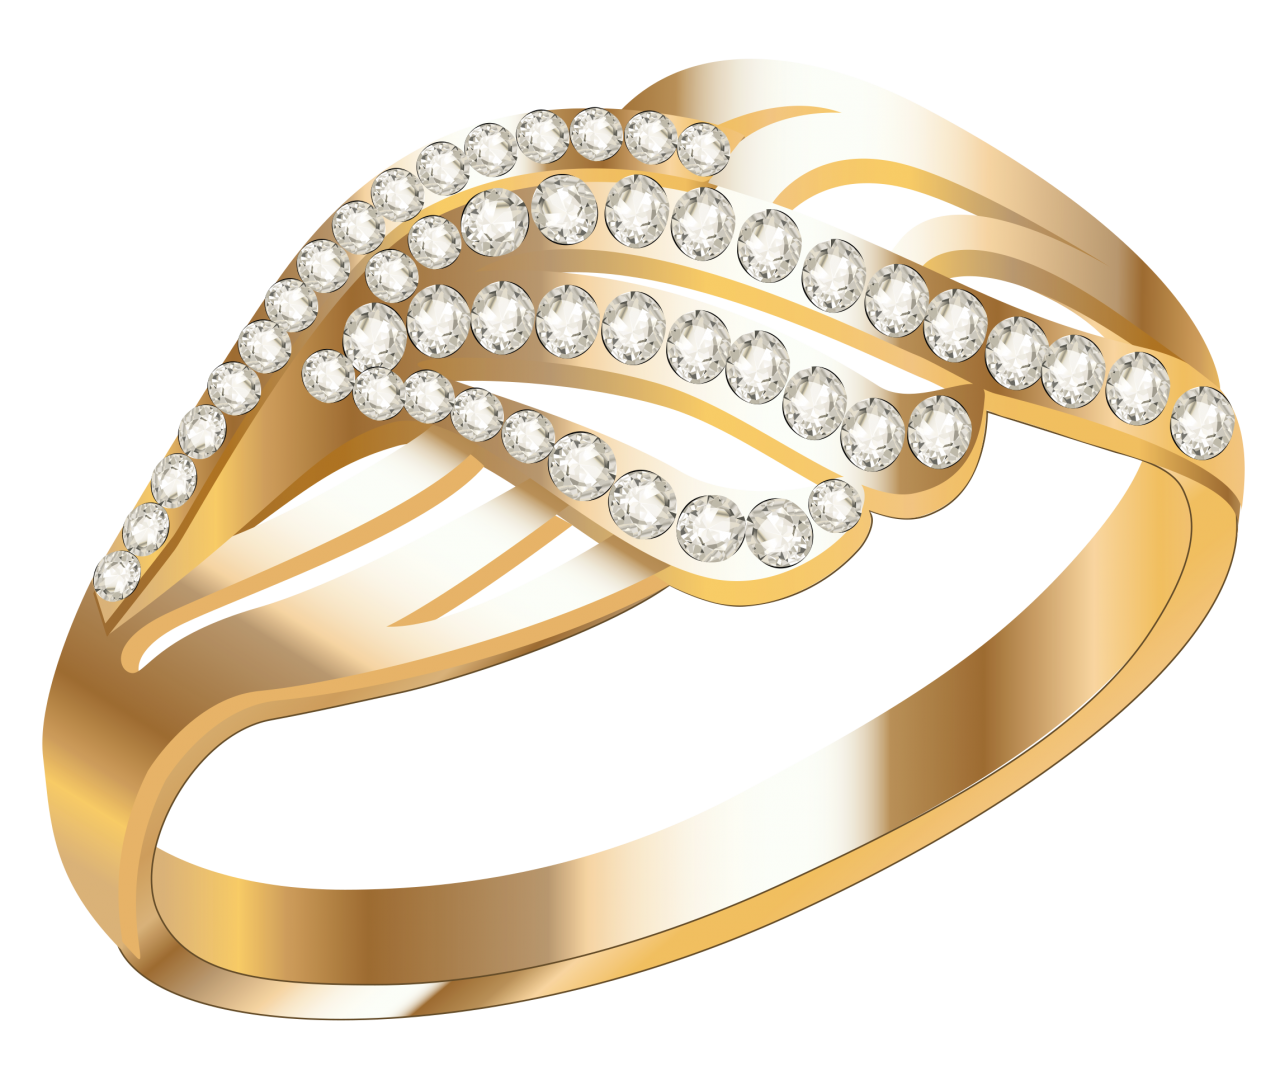 Gold Ring With White Diamond PNG Image